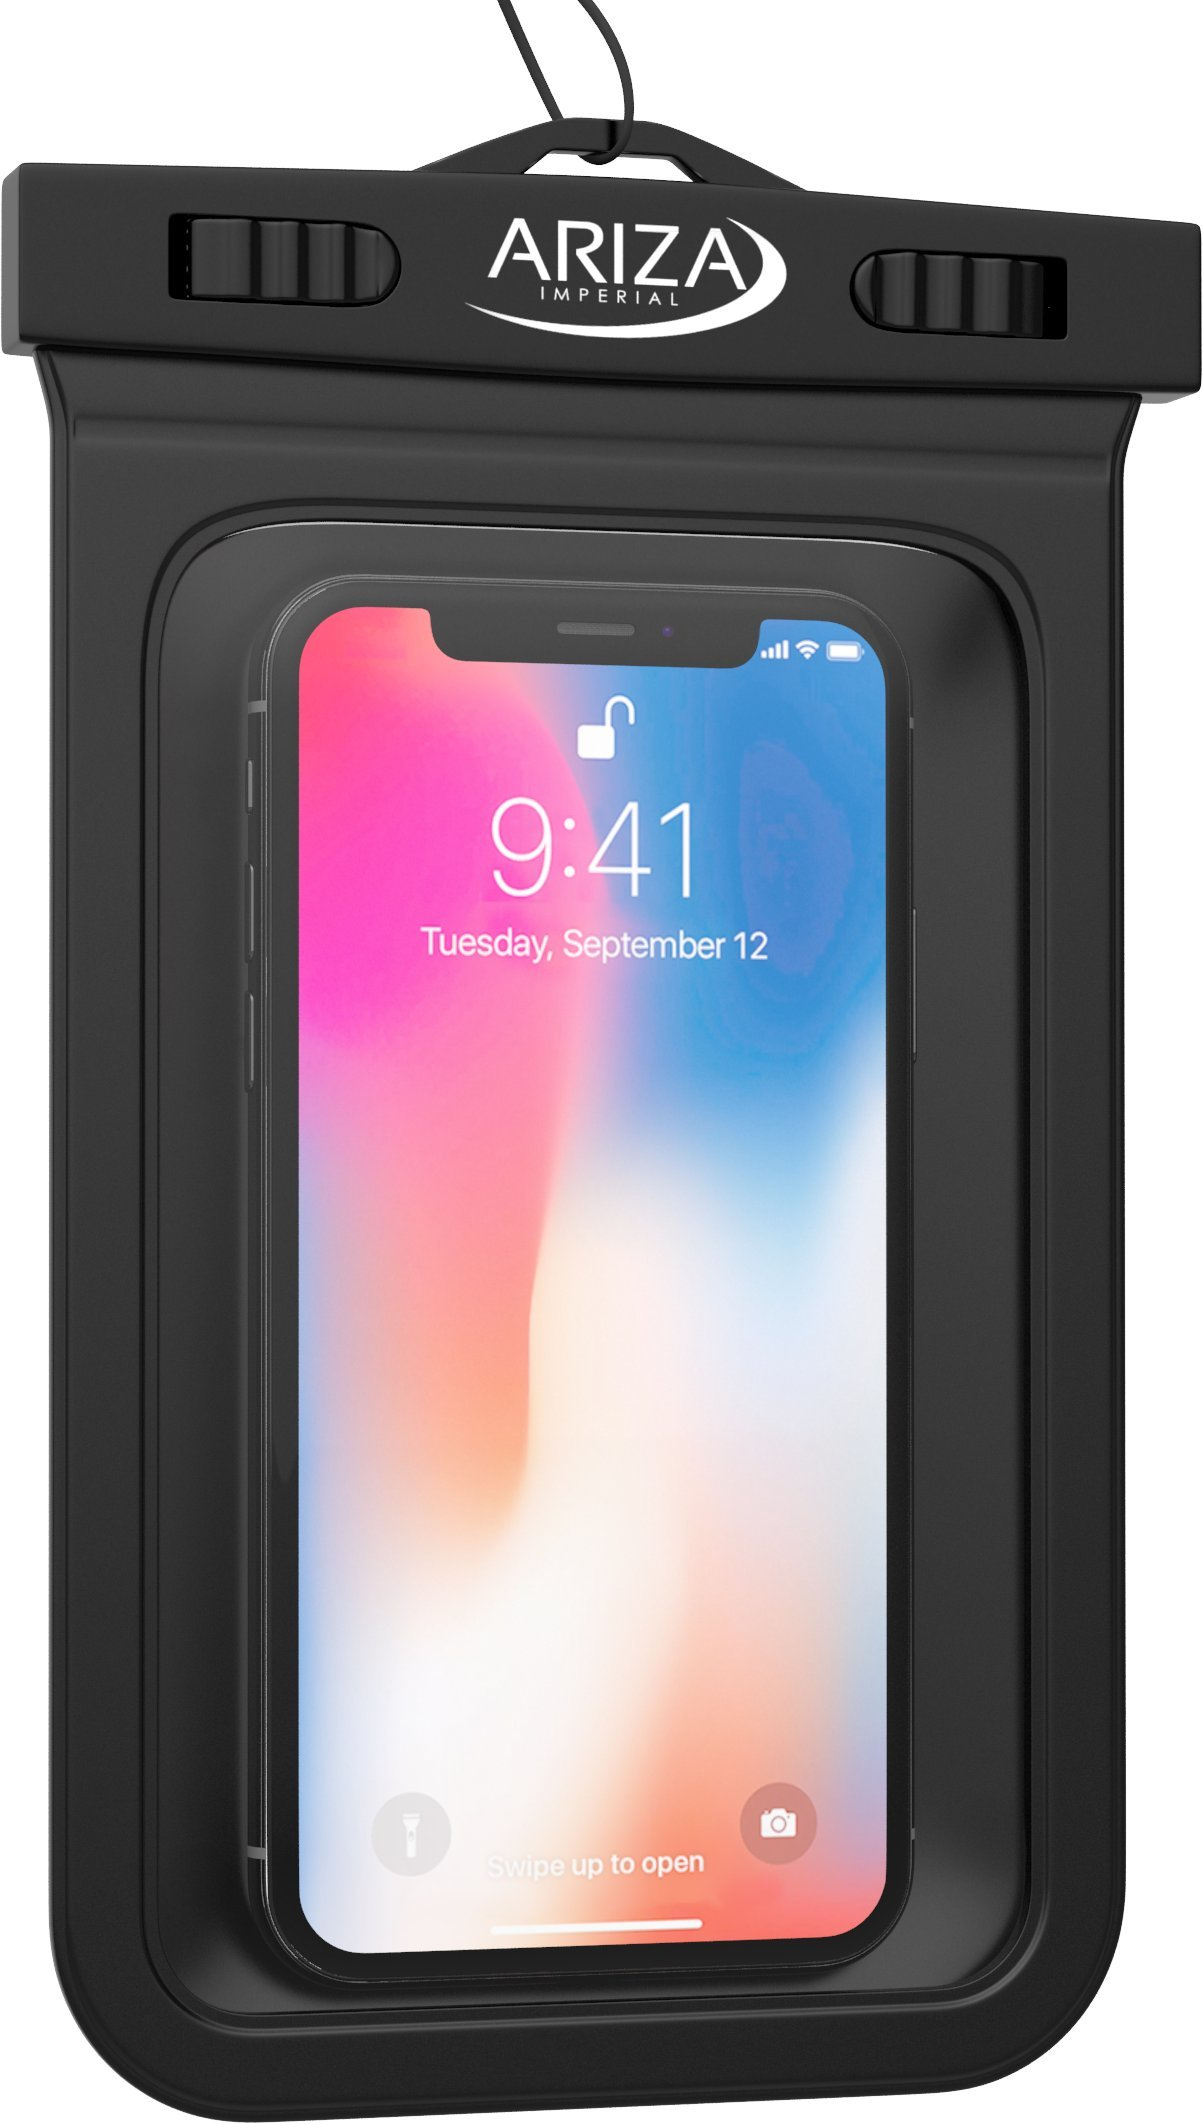 3 Pack Universal Waterproof Pouch Case with Lanyard Strap for iPhone X, 8/7/7 Plus/6S/6/6S Plus, Samsung Galaxy S9/S9 Plus/S8/S8 Plus/Note 8 6 5 4, Google Pixel 2 HTC by Ariza (Image #6)